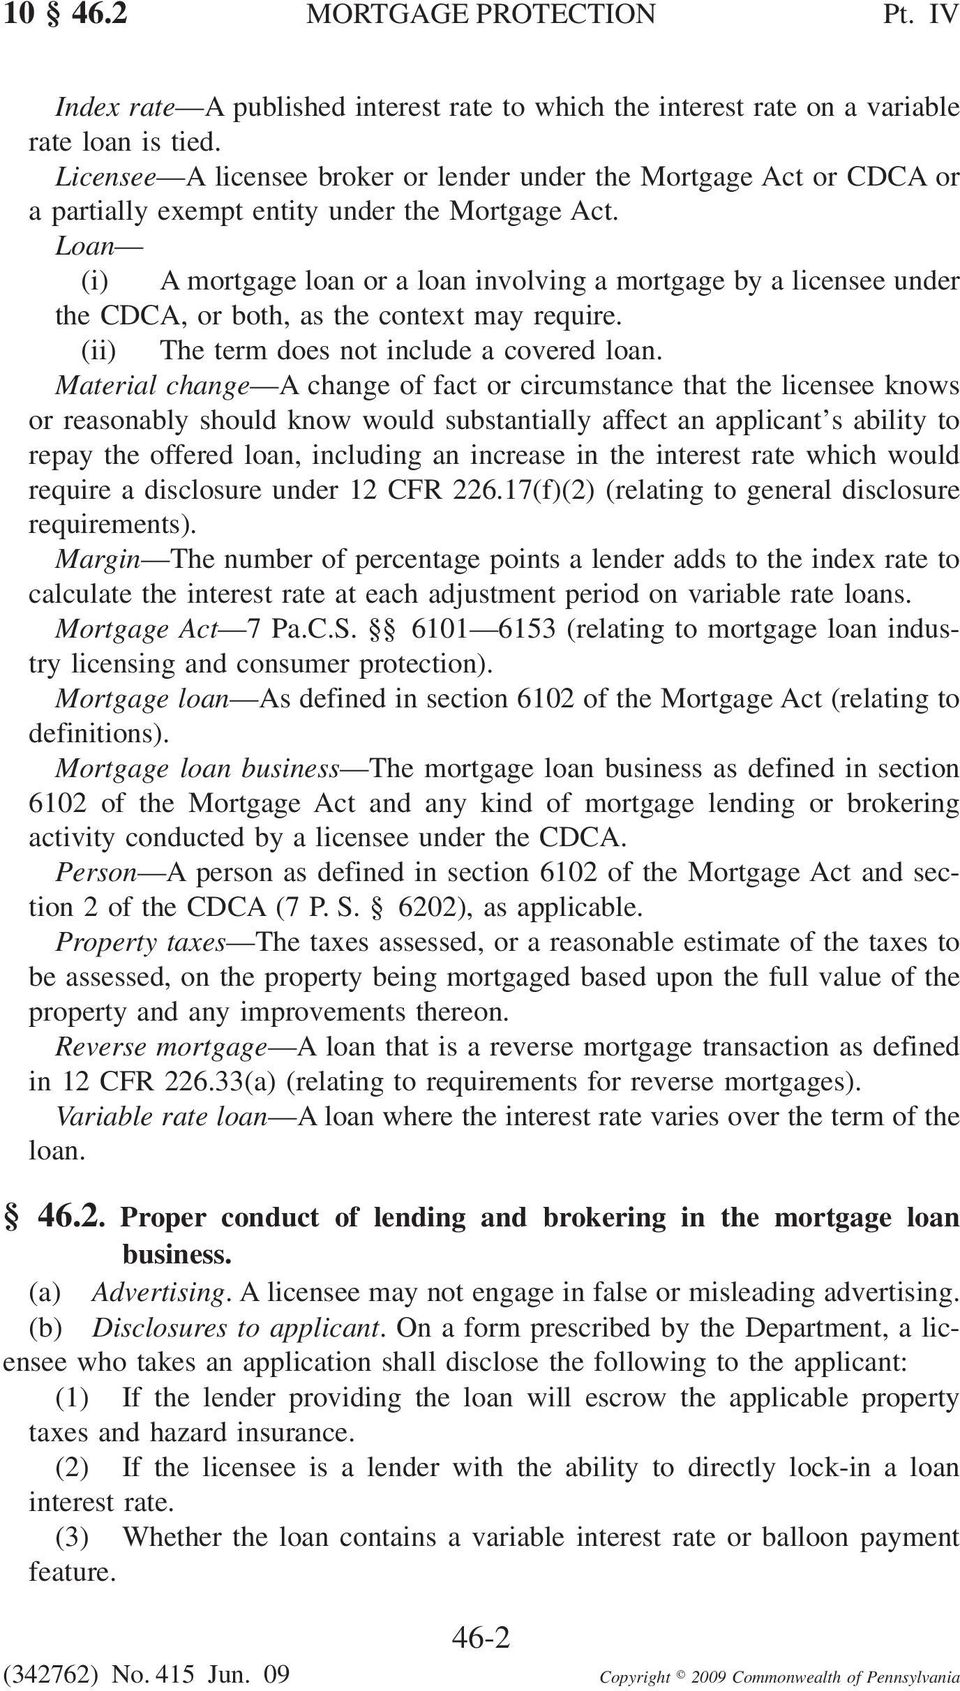 Loan (i) A mortgage loan or a loan involving a mortgage by a licensee under the CDCA, or both, as the context may require. (ii) The term does not include a covered loan.